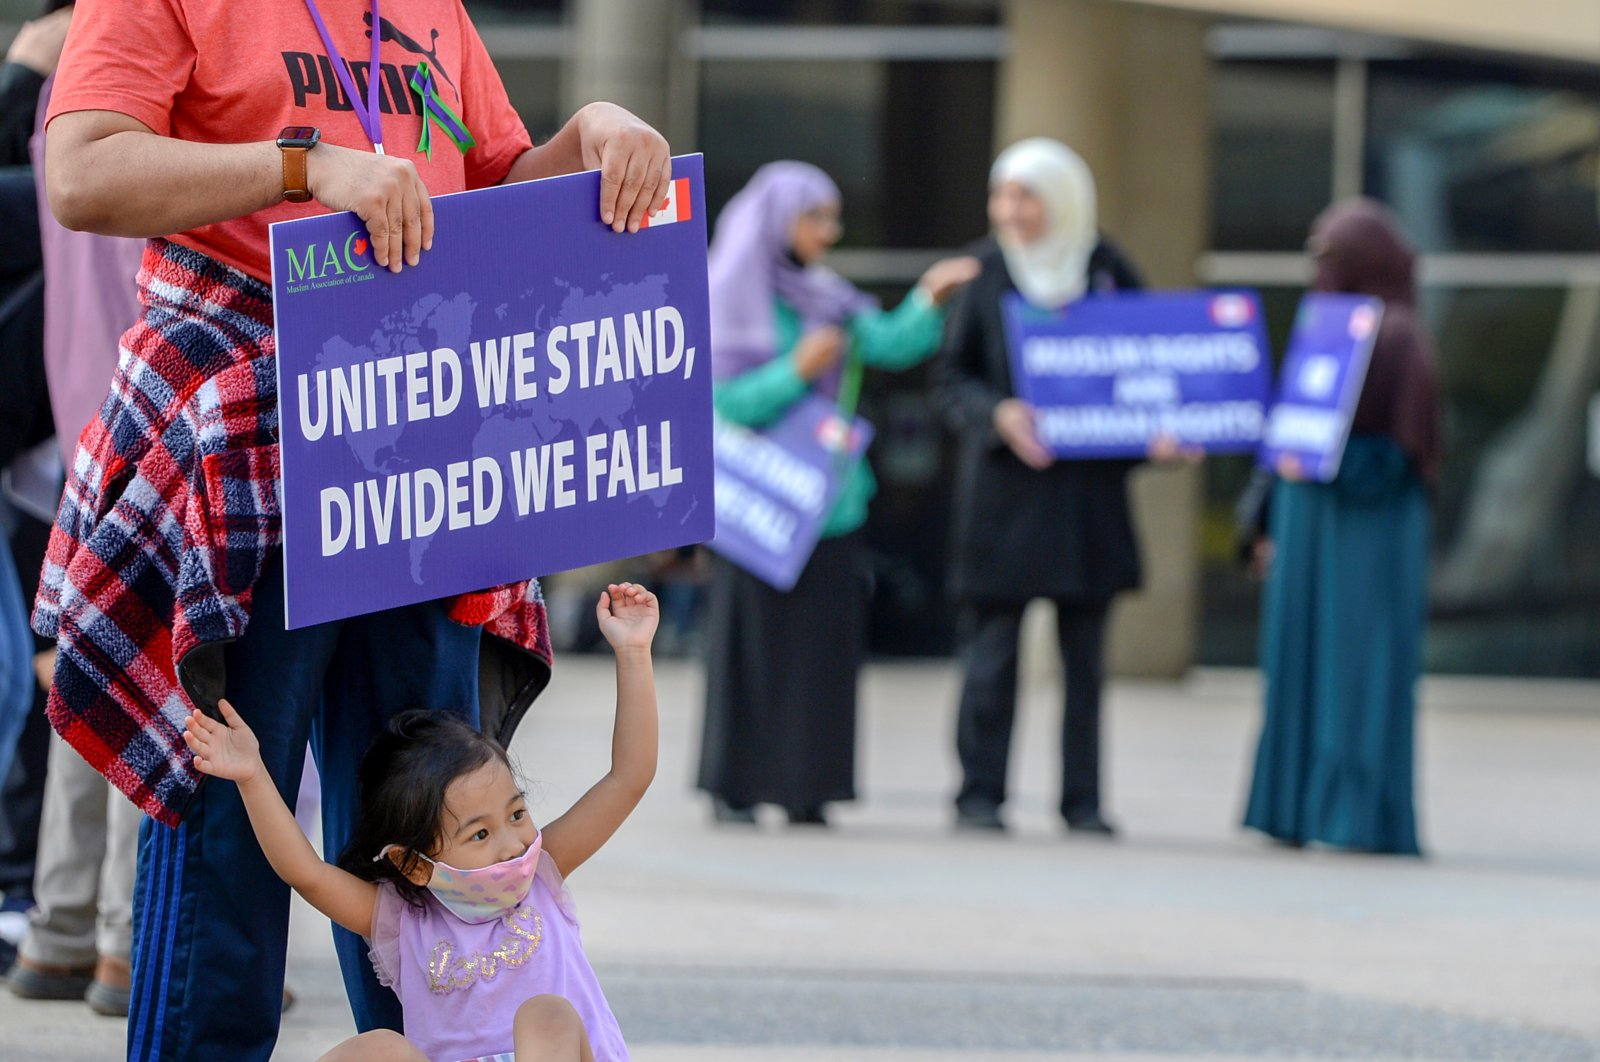 People attend a rally to highlight Islamophobia, sponsored by the Muslim Association of Canada, in Toronto, Ontario, Canada, June 18, 2021. (REUTERS Photo)